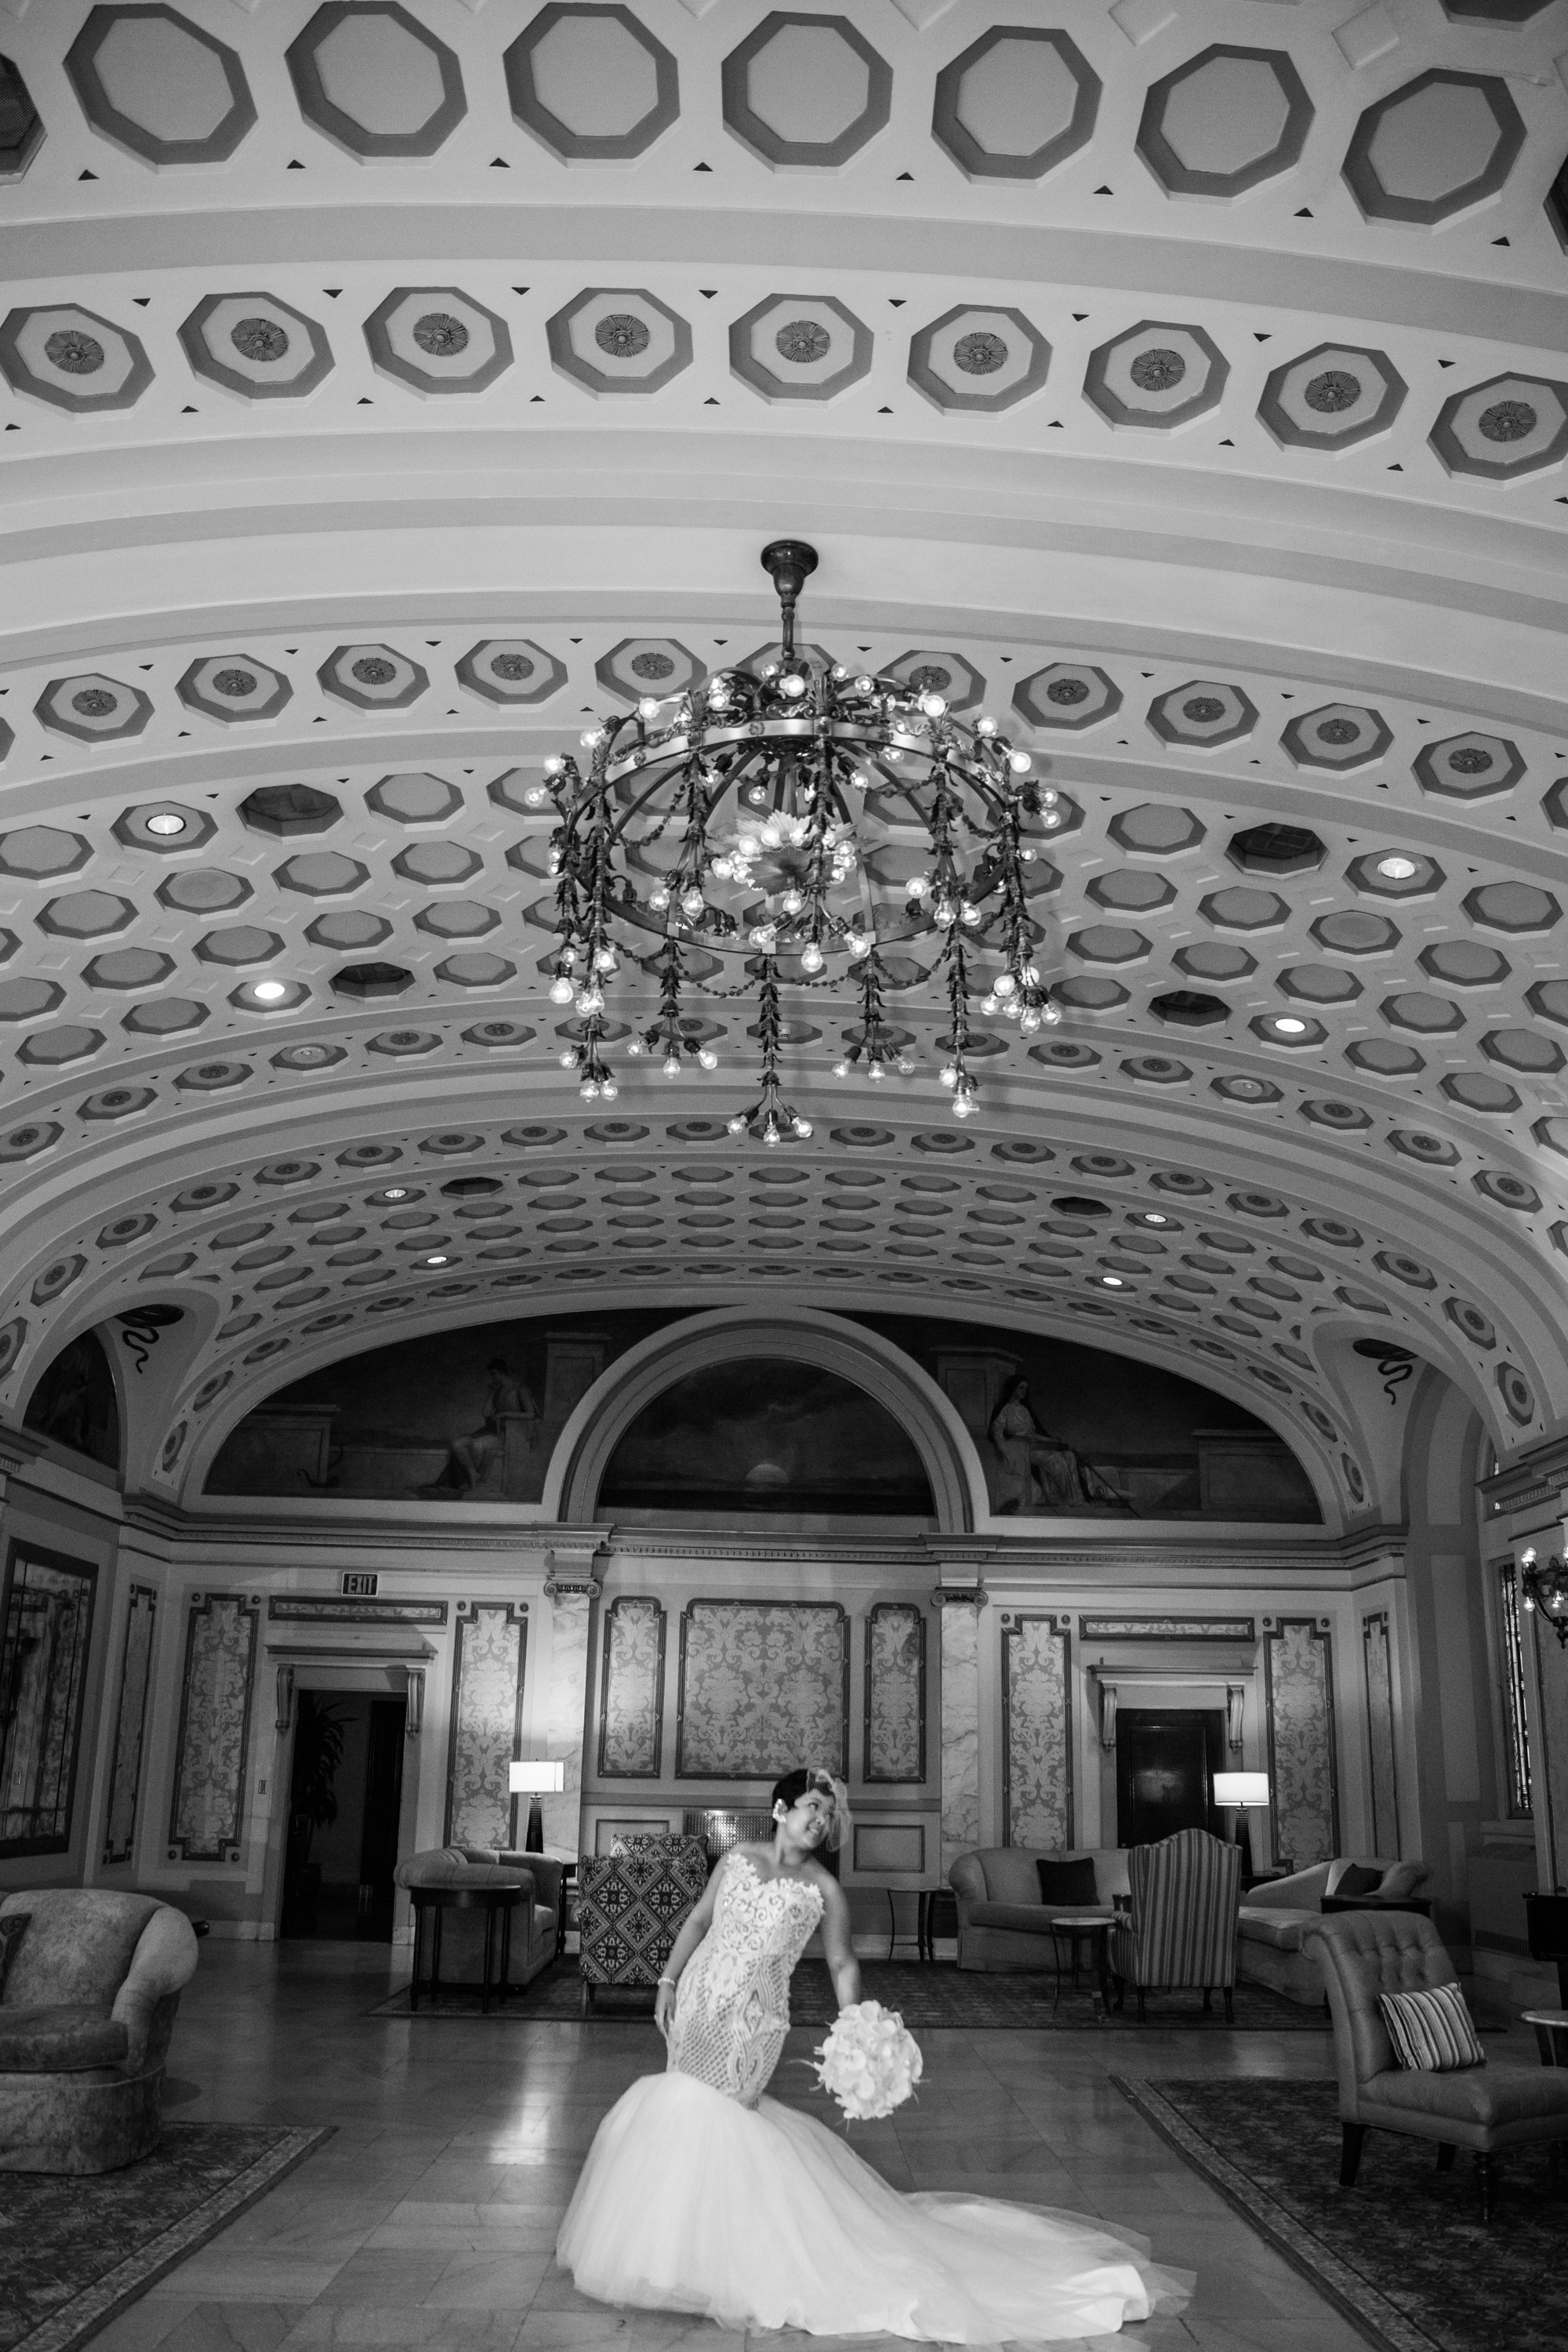 Best Classic Black Bride at The Grand Baltimore Maryland Husband and Wife Wedding Photographers Megapixels Media (26 of 98).jpg